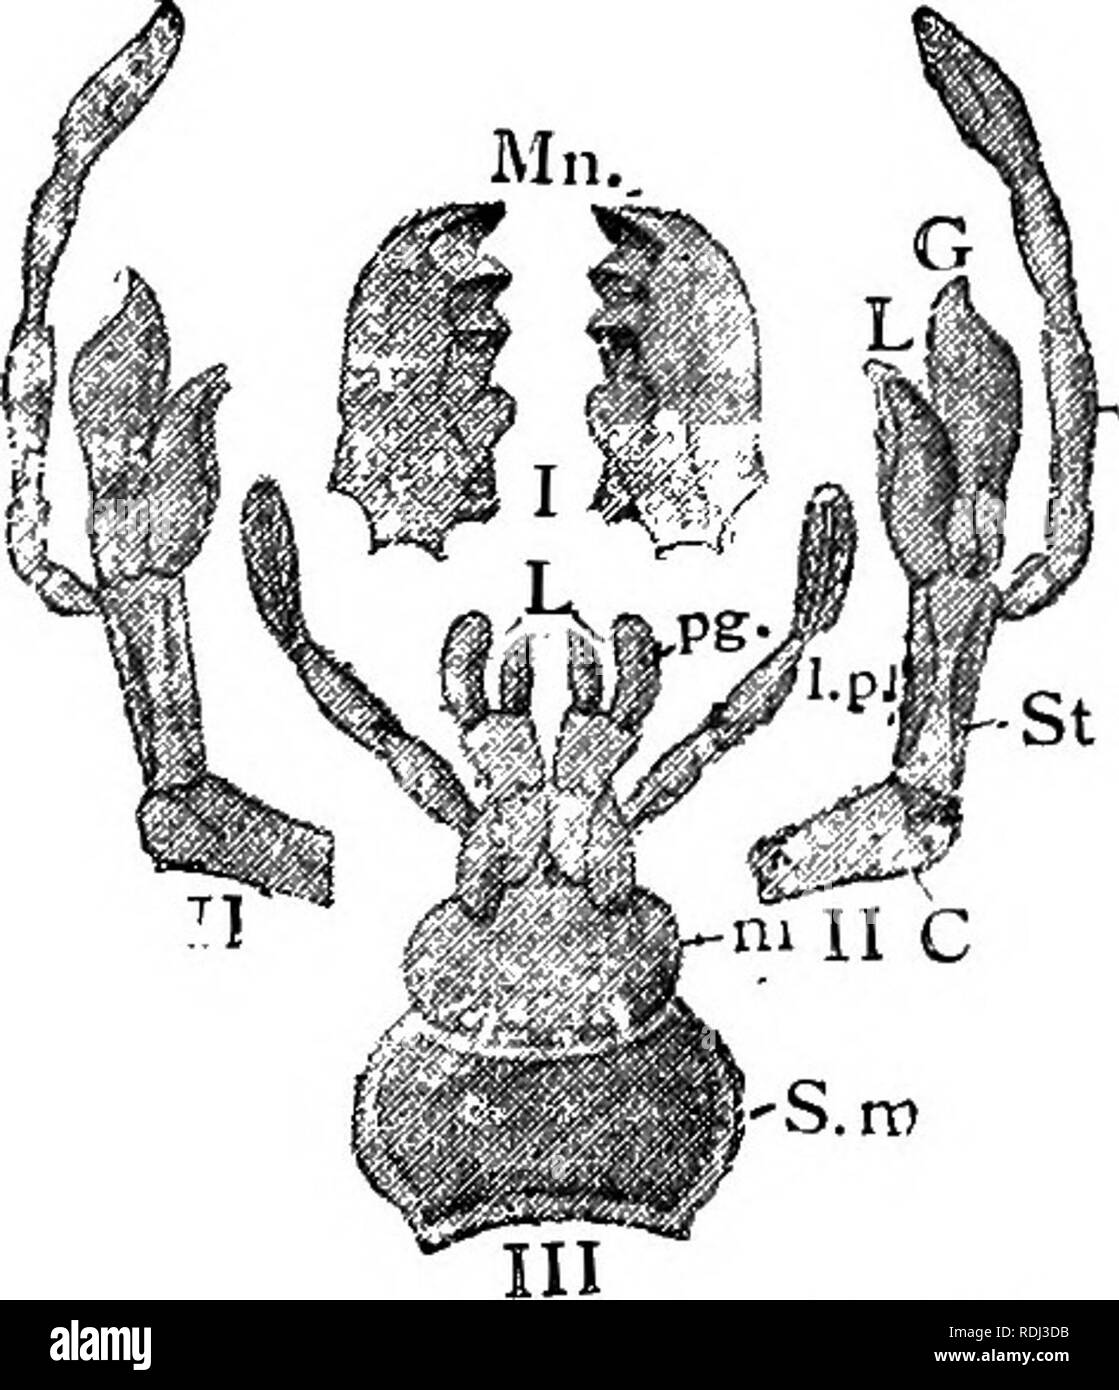 . A manual of elementary zoology . Zoology. Fig. 179.-—The head of a cockroach, seen from in front. at,, Antenna; dp., clypeus ; ecr., epicranium ; eye;/en., fenestra; gen., gena; Ibm., part of the labium ; lb.p., labial palp ; Ibr., labrum; md., mandible; mx., part of the maxilla; mx.p., maxillary palp; sut., sutures.. -mx.p Fig. 180.—The mouth appendages of a cockroach.—After Dufour. I, Mn., mandibles ; II, maxilhe ; C, cardo ; St., stripes ; L., lacinia; G., galea; mx.p., max- illary palp ; III, labium ; S.m., submentum ; in., mentum ; L., lacinias ; pg., paraglossa; l.p., labial palp.. Ple - Stock Image